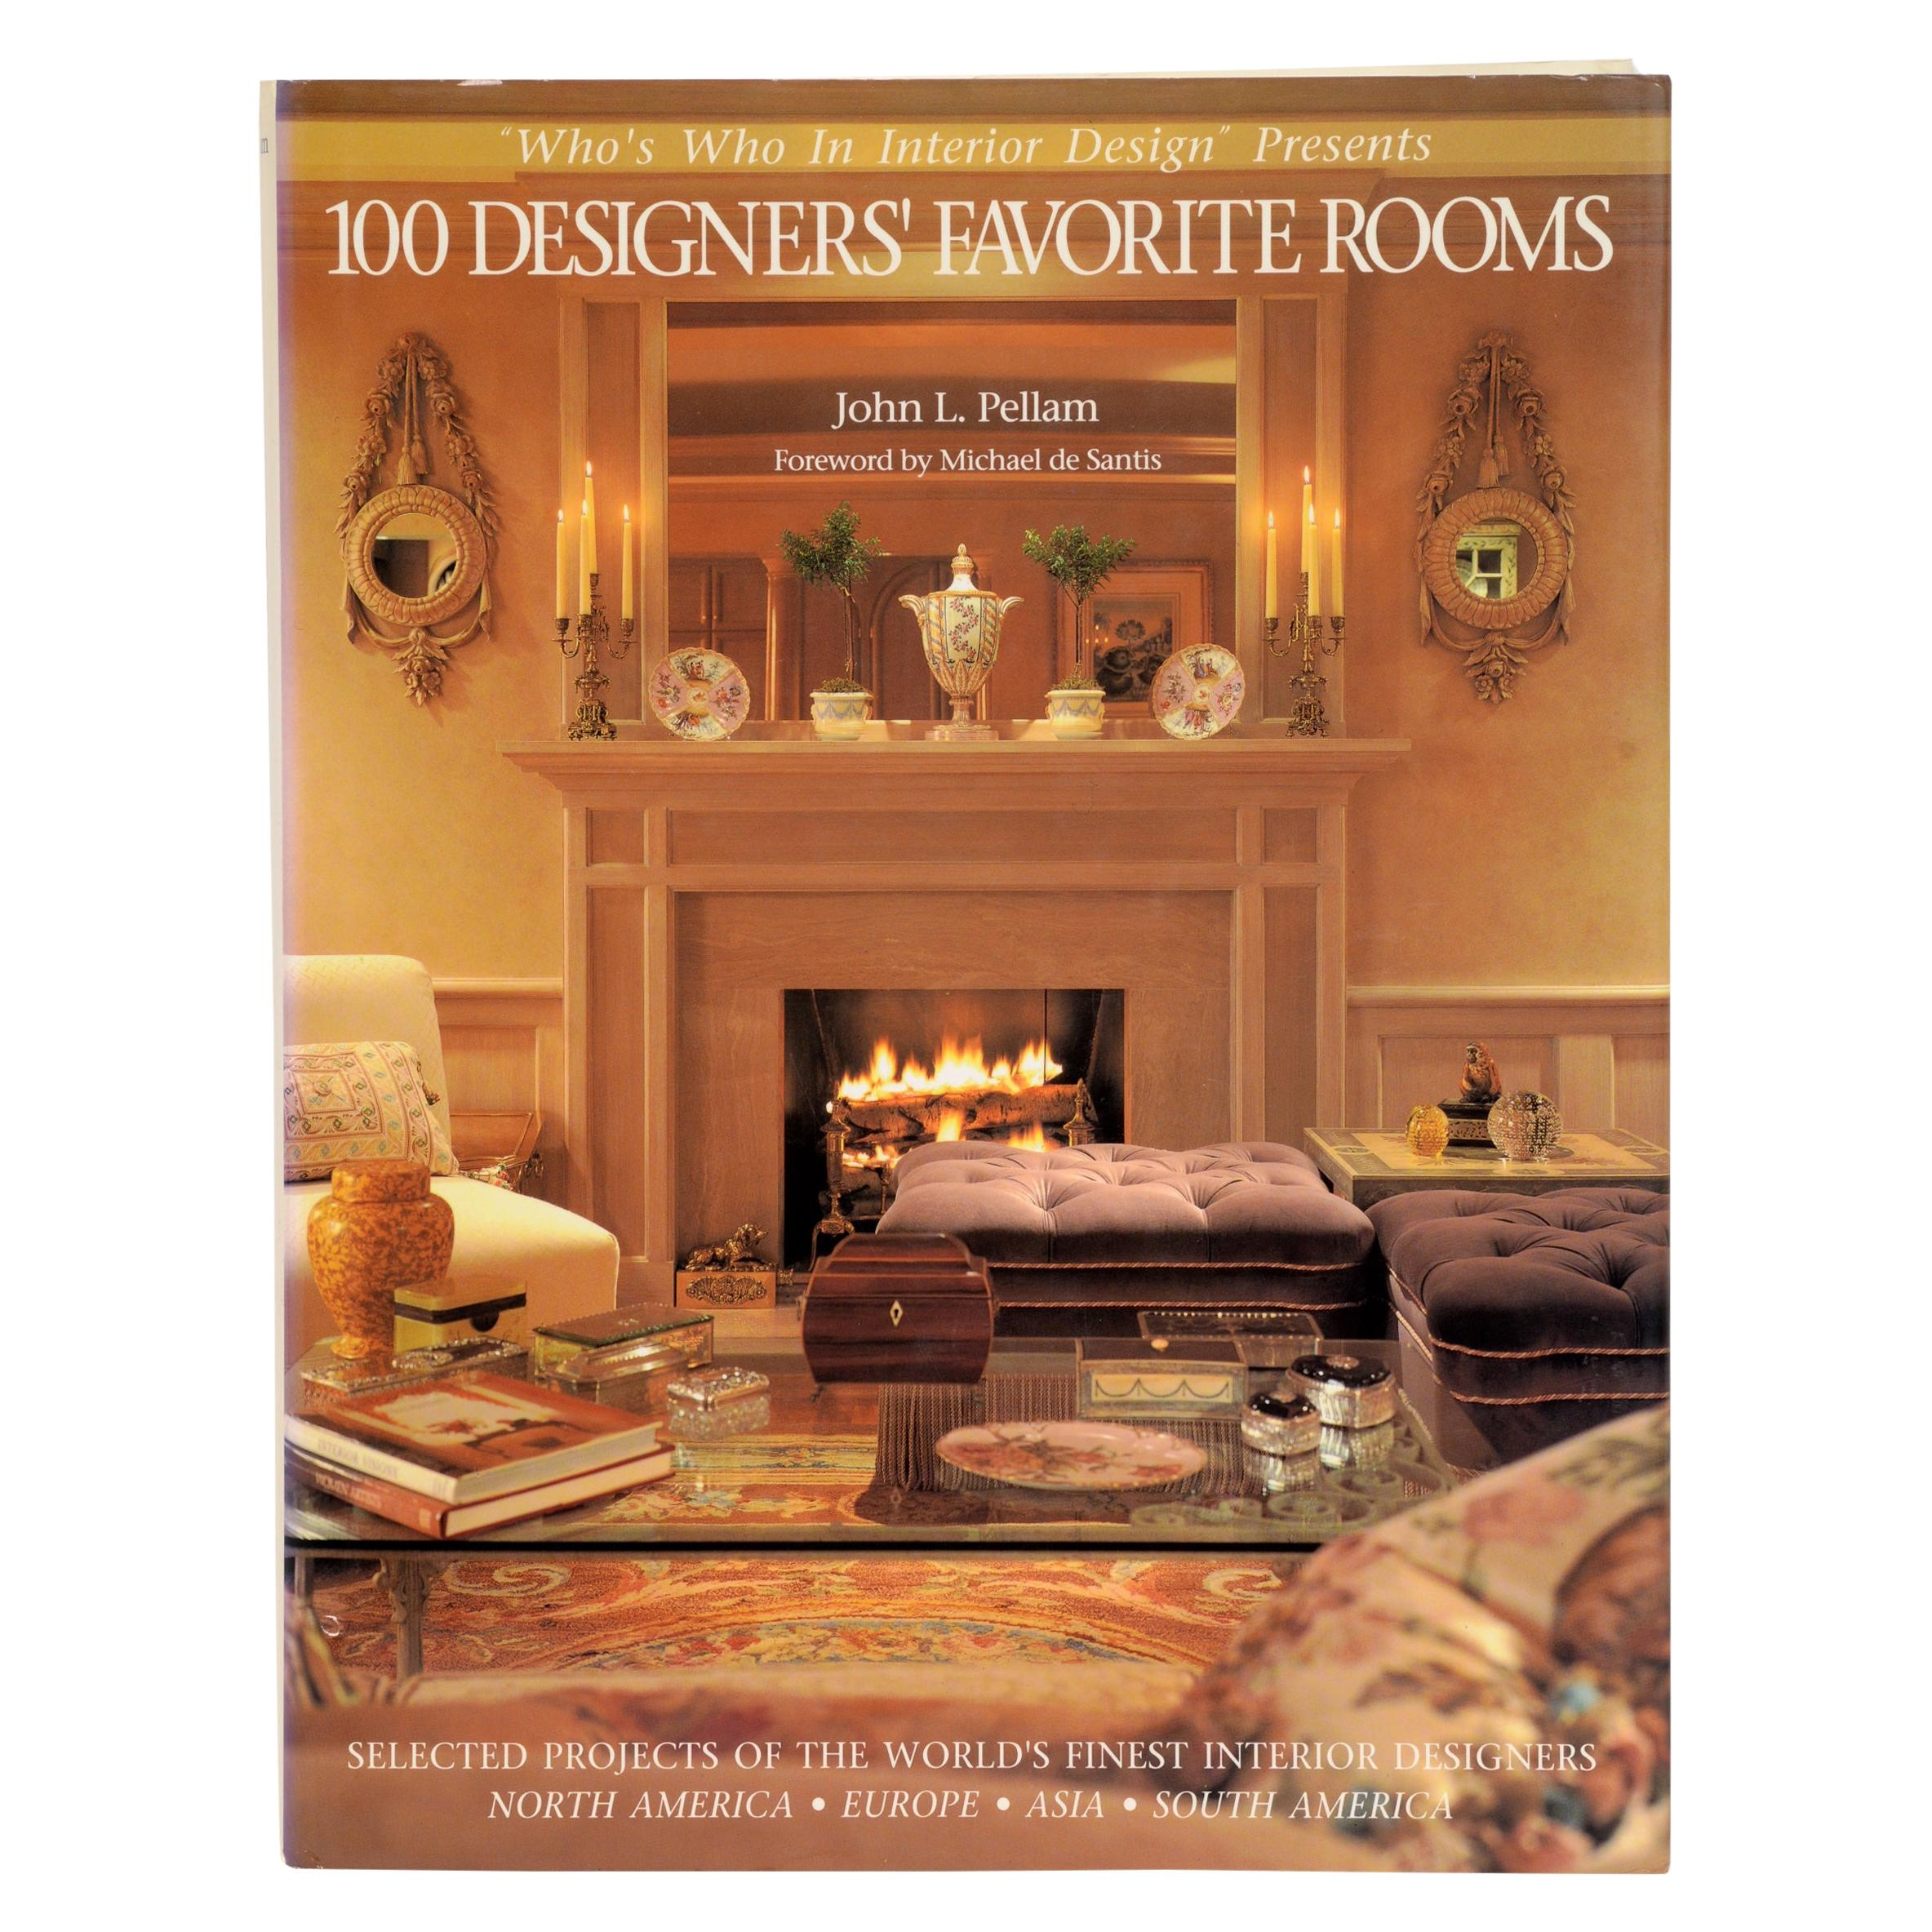 100 Designers' Favorite Rooms Projects of the World's Finest Designers 1st Ed